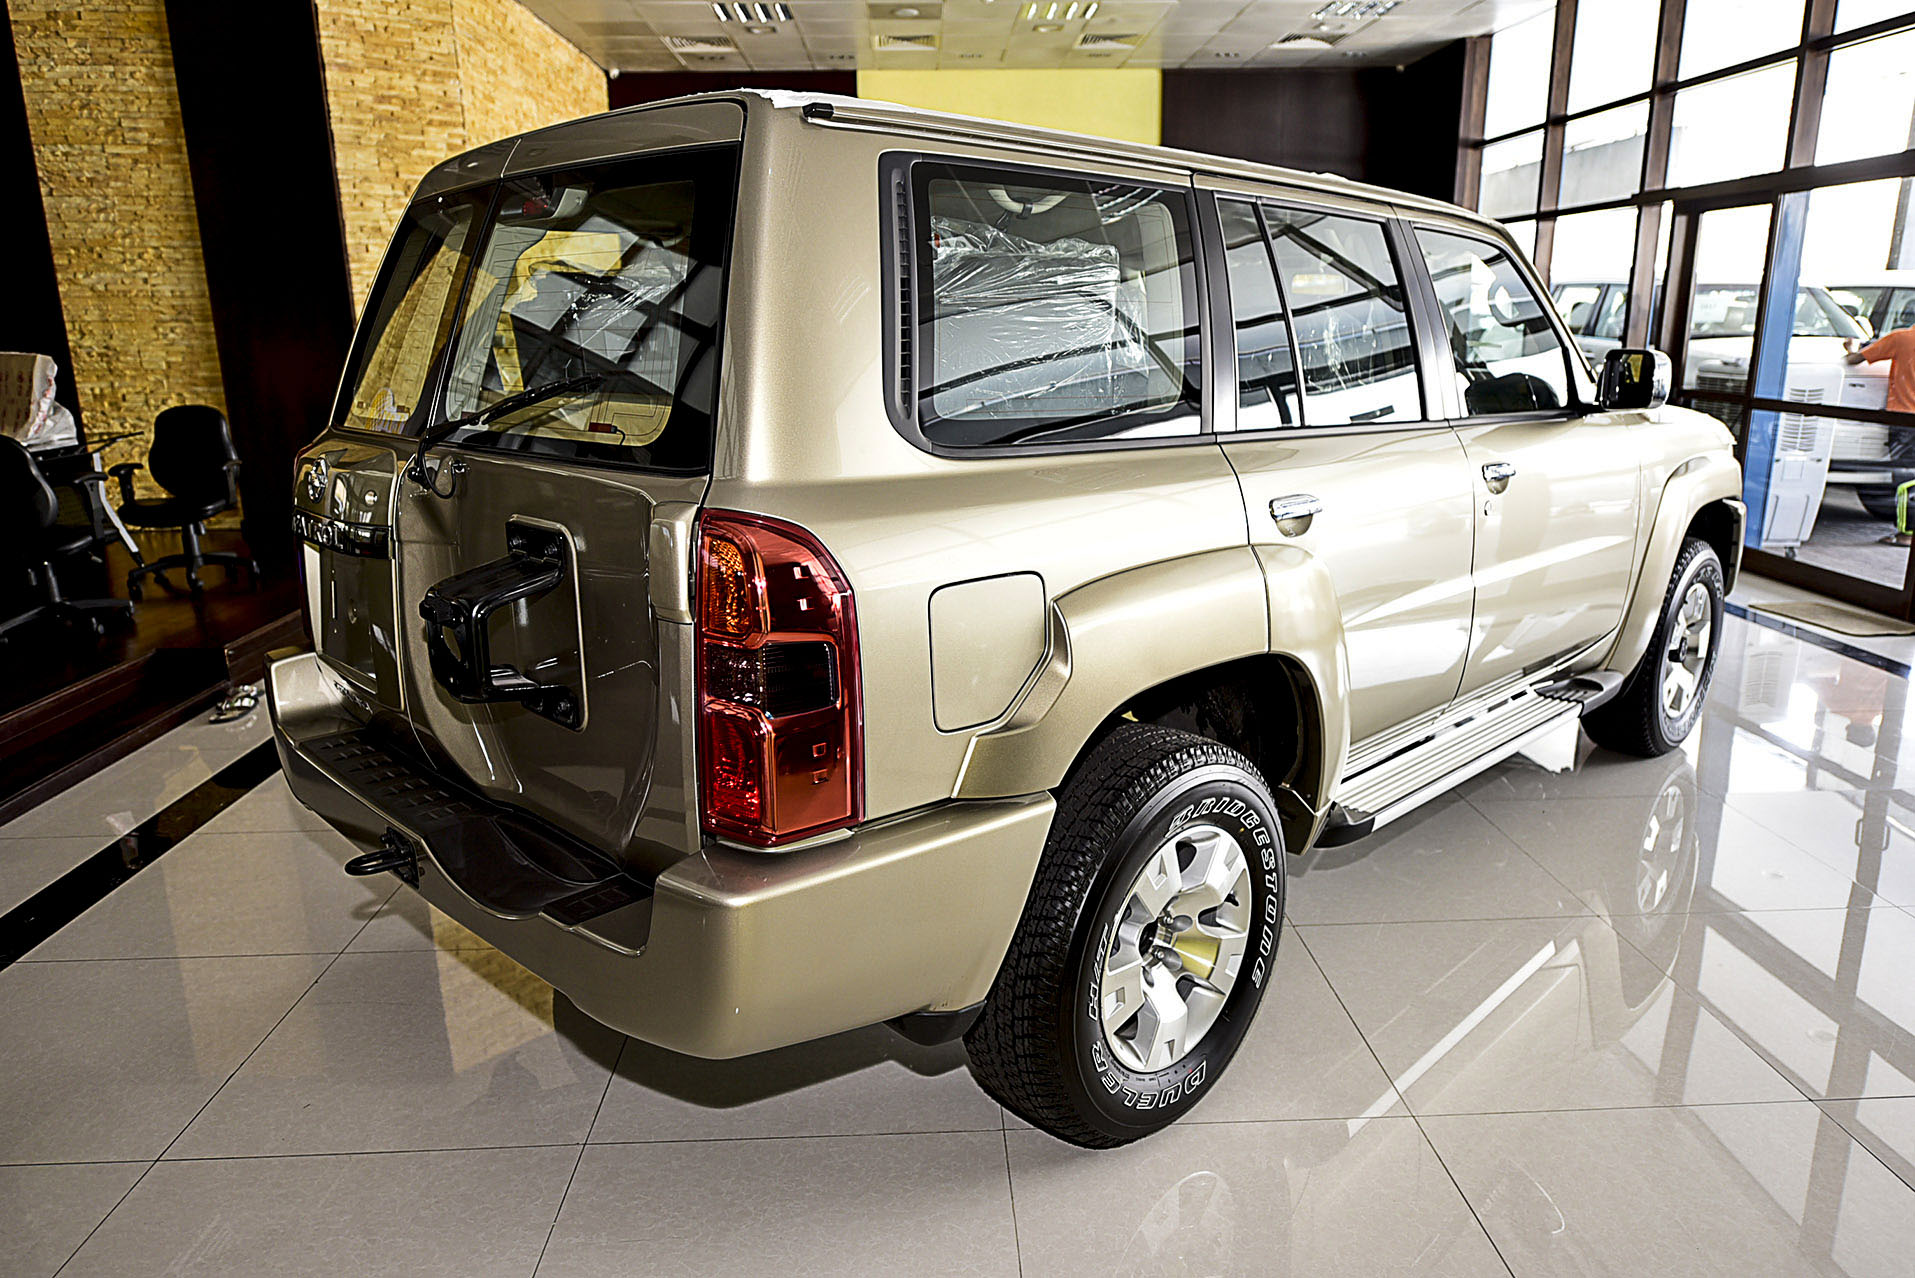 FOR SALE NISSAN PATROL SAFARI GRX 4X4 – Kargal Dealers - UAE